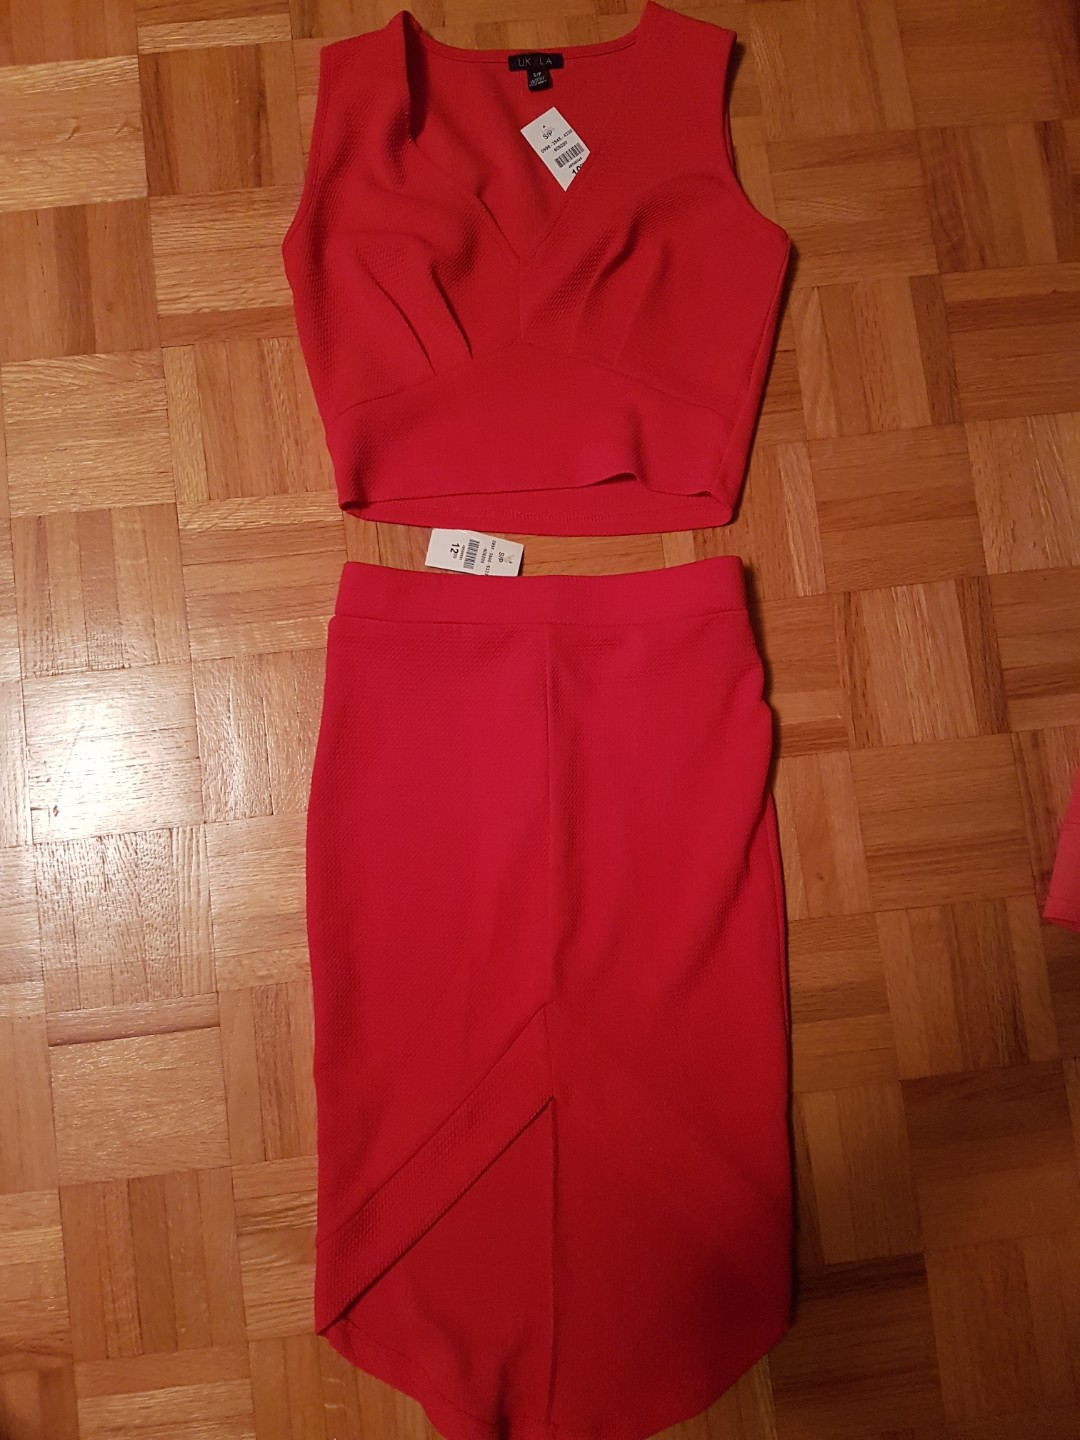 Red Top and Skirt Set